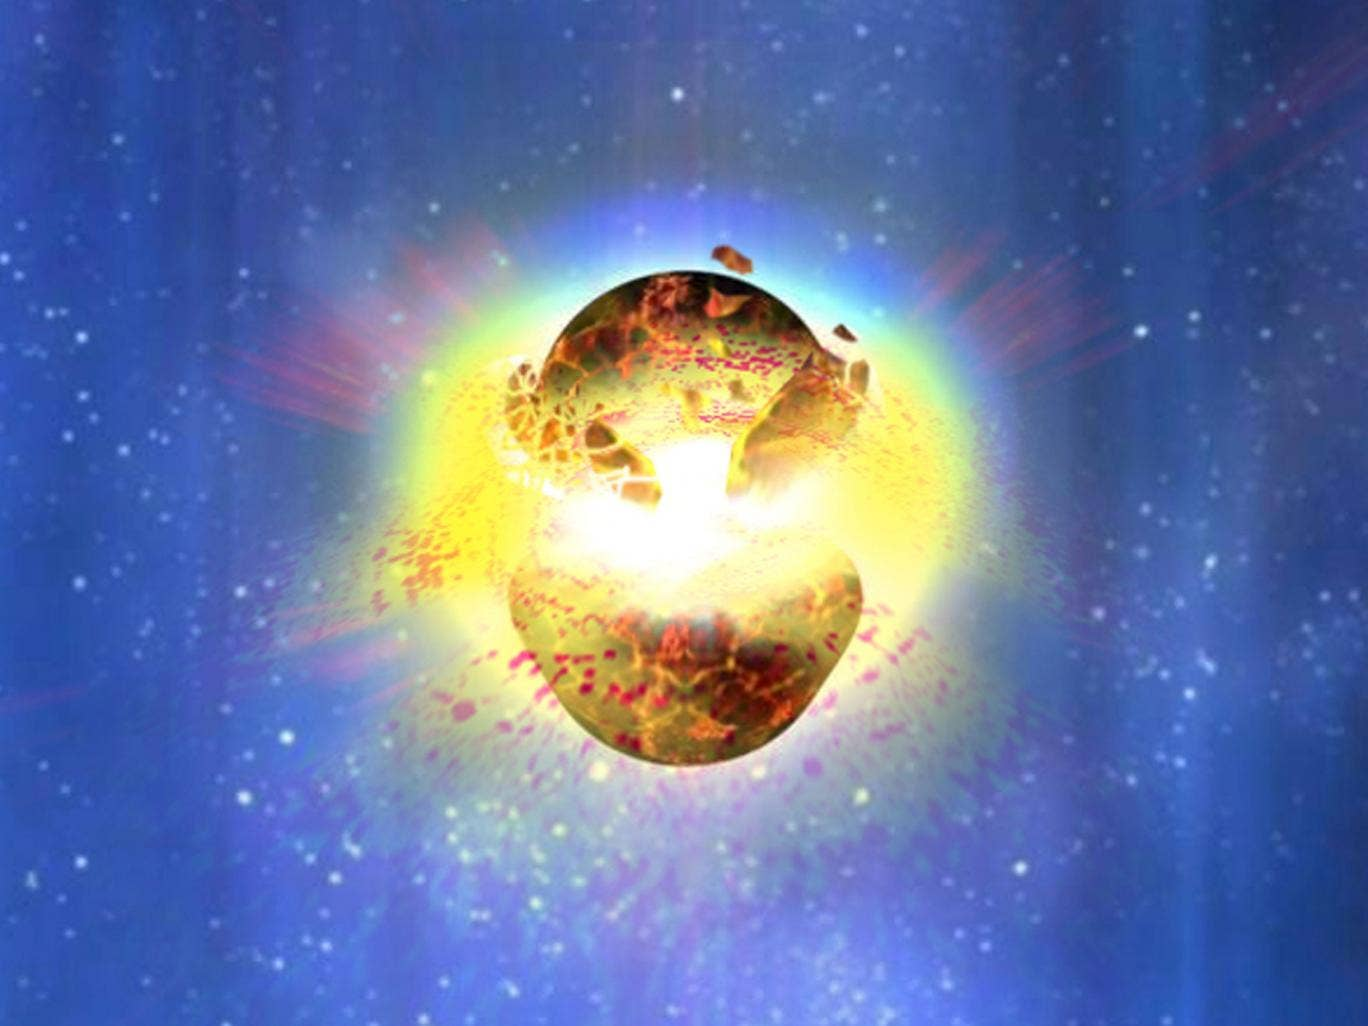 An artist's impression of two neutron stars colliding to produce a gamma ray burst